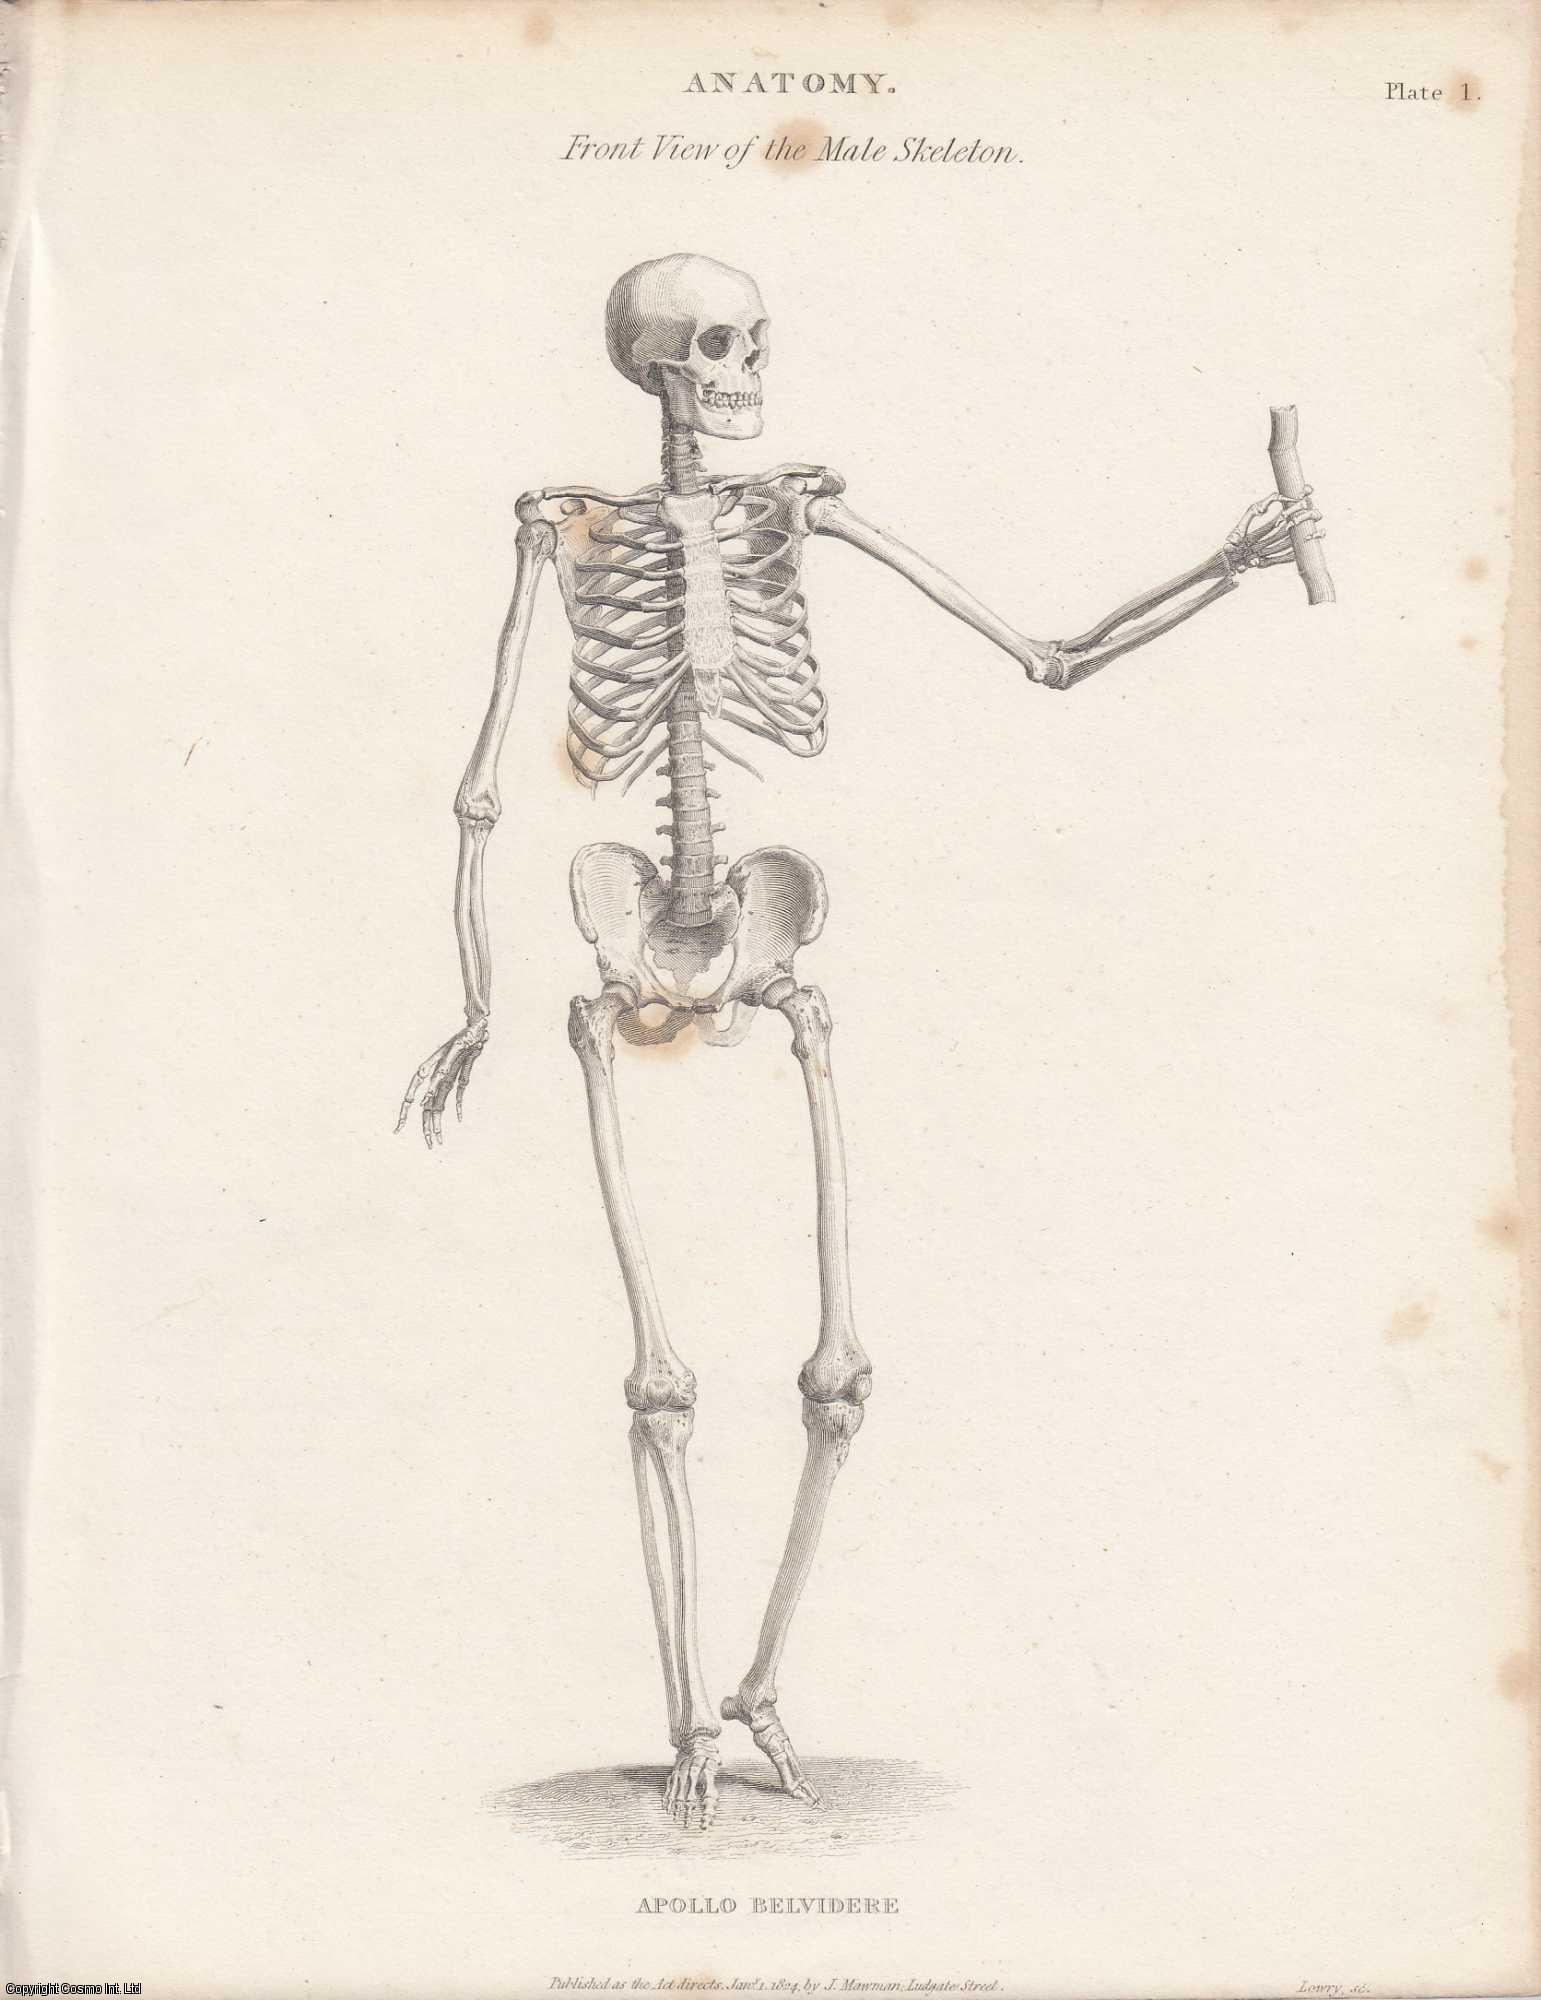 J . F. SOUTH, AND F. LE GROS CLARK. - Anatomy.  An Article From the Encyclopaedia Metropolitana.